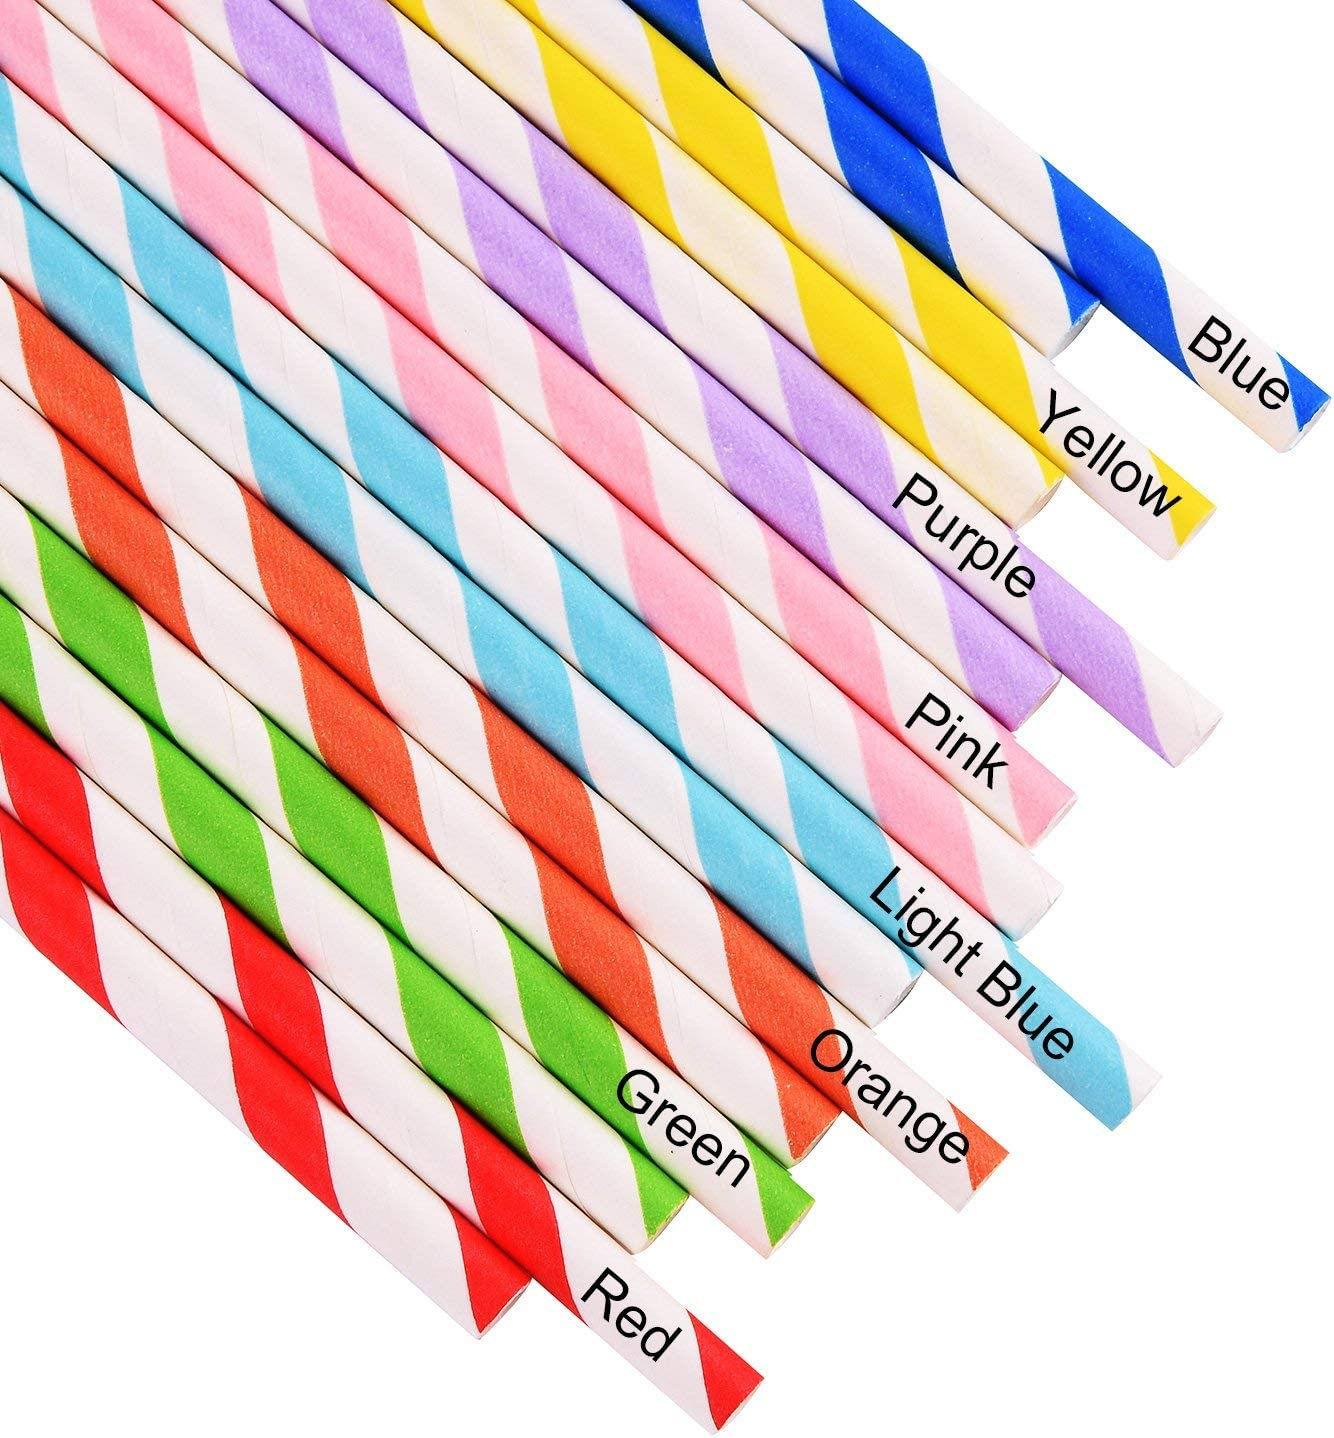 Soda ALINK 200 Biodegradable Paper Straws Bulk Bridal//Baby Shower Coffee Assorted Rainbow Colors Striped Drinking Straws for Juice Smoothies Cocktail Wedding Holiday Party Suppliers